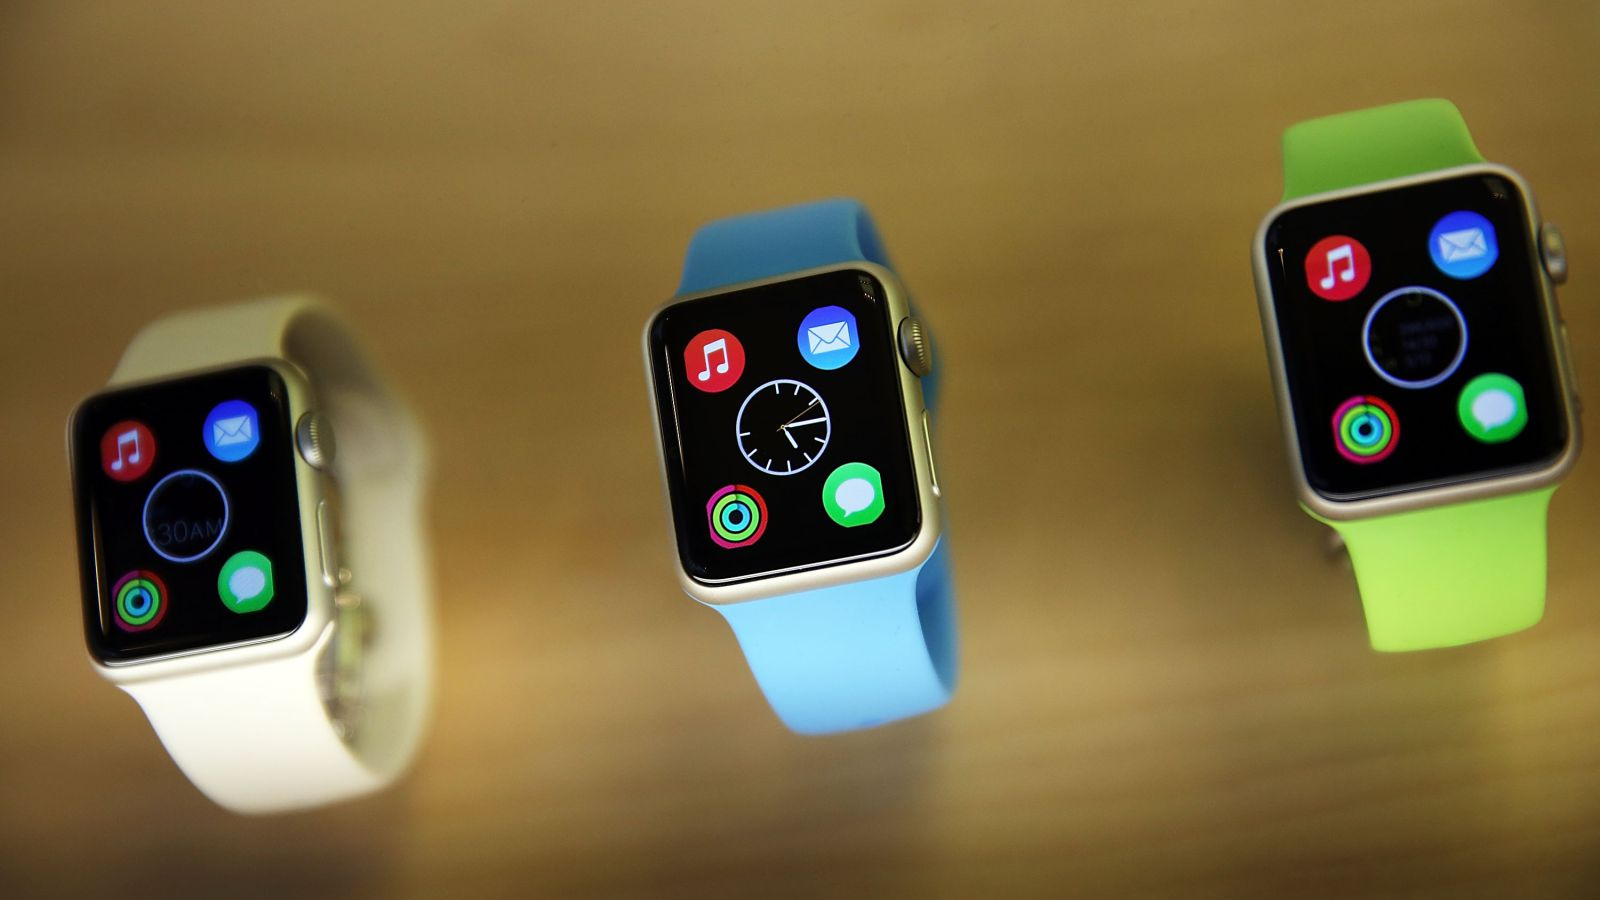 Should you buy the Apple Watch now or wait for Apple Watch 2?